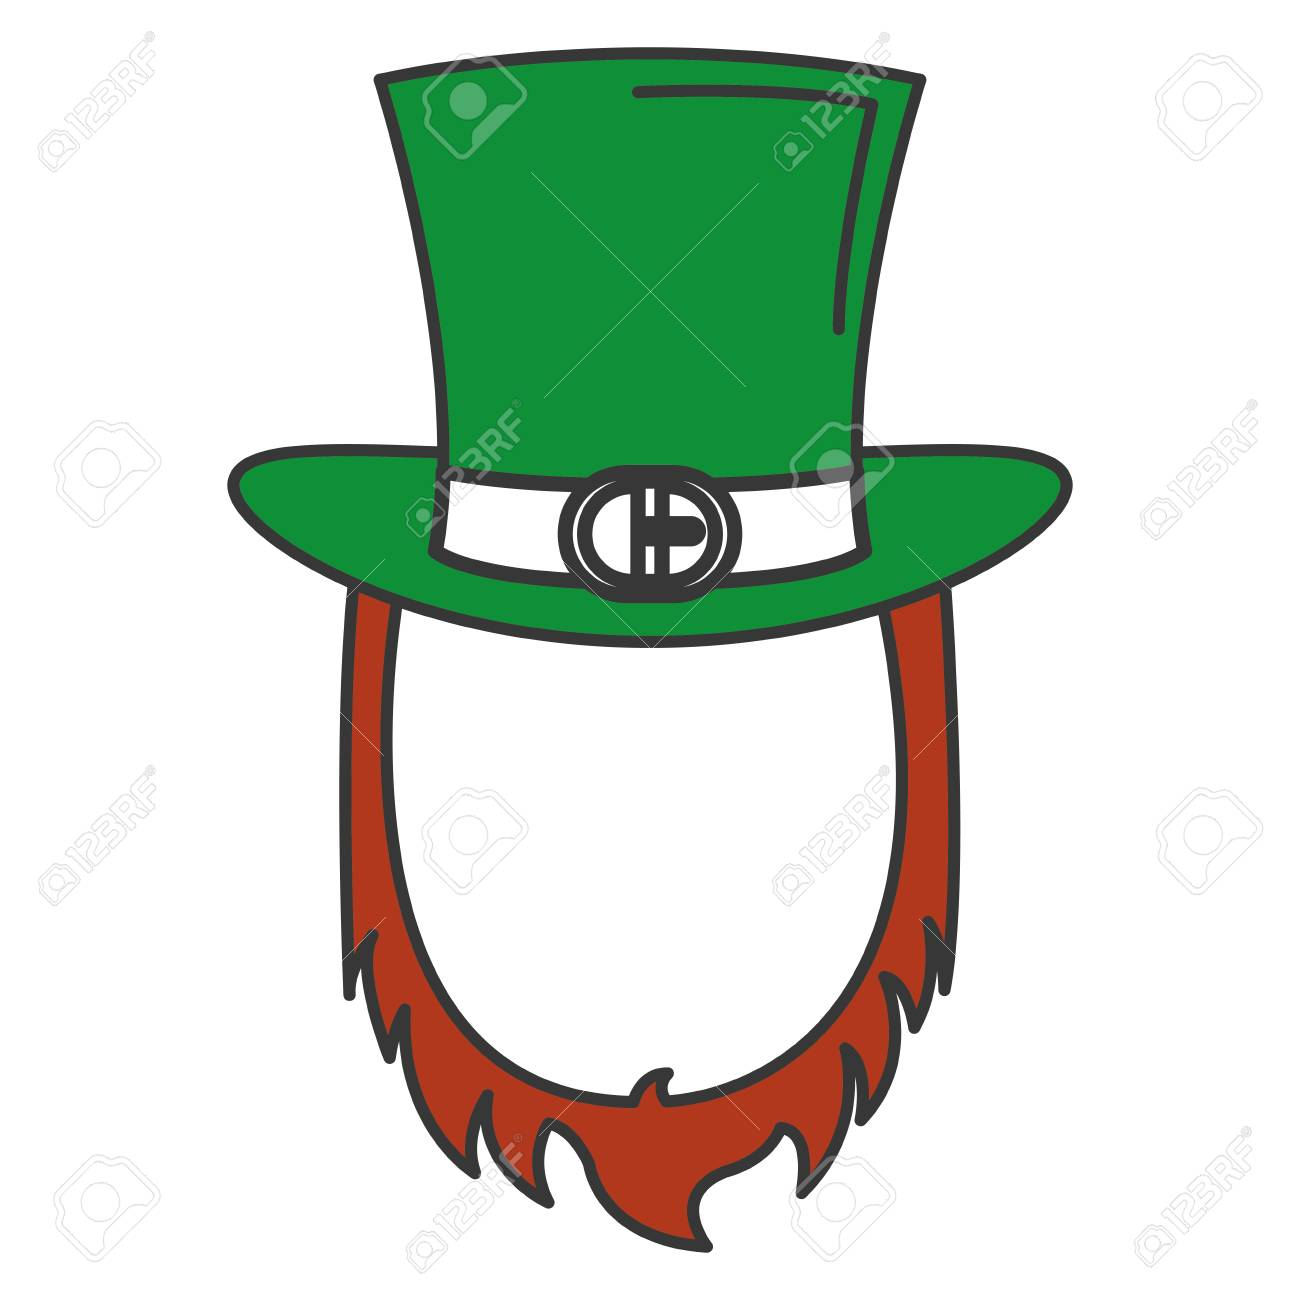 Irish elf hat and beard saint patrick celebration vector illustration  design Stock Vector - 84227928 6c7940c9613